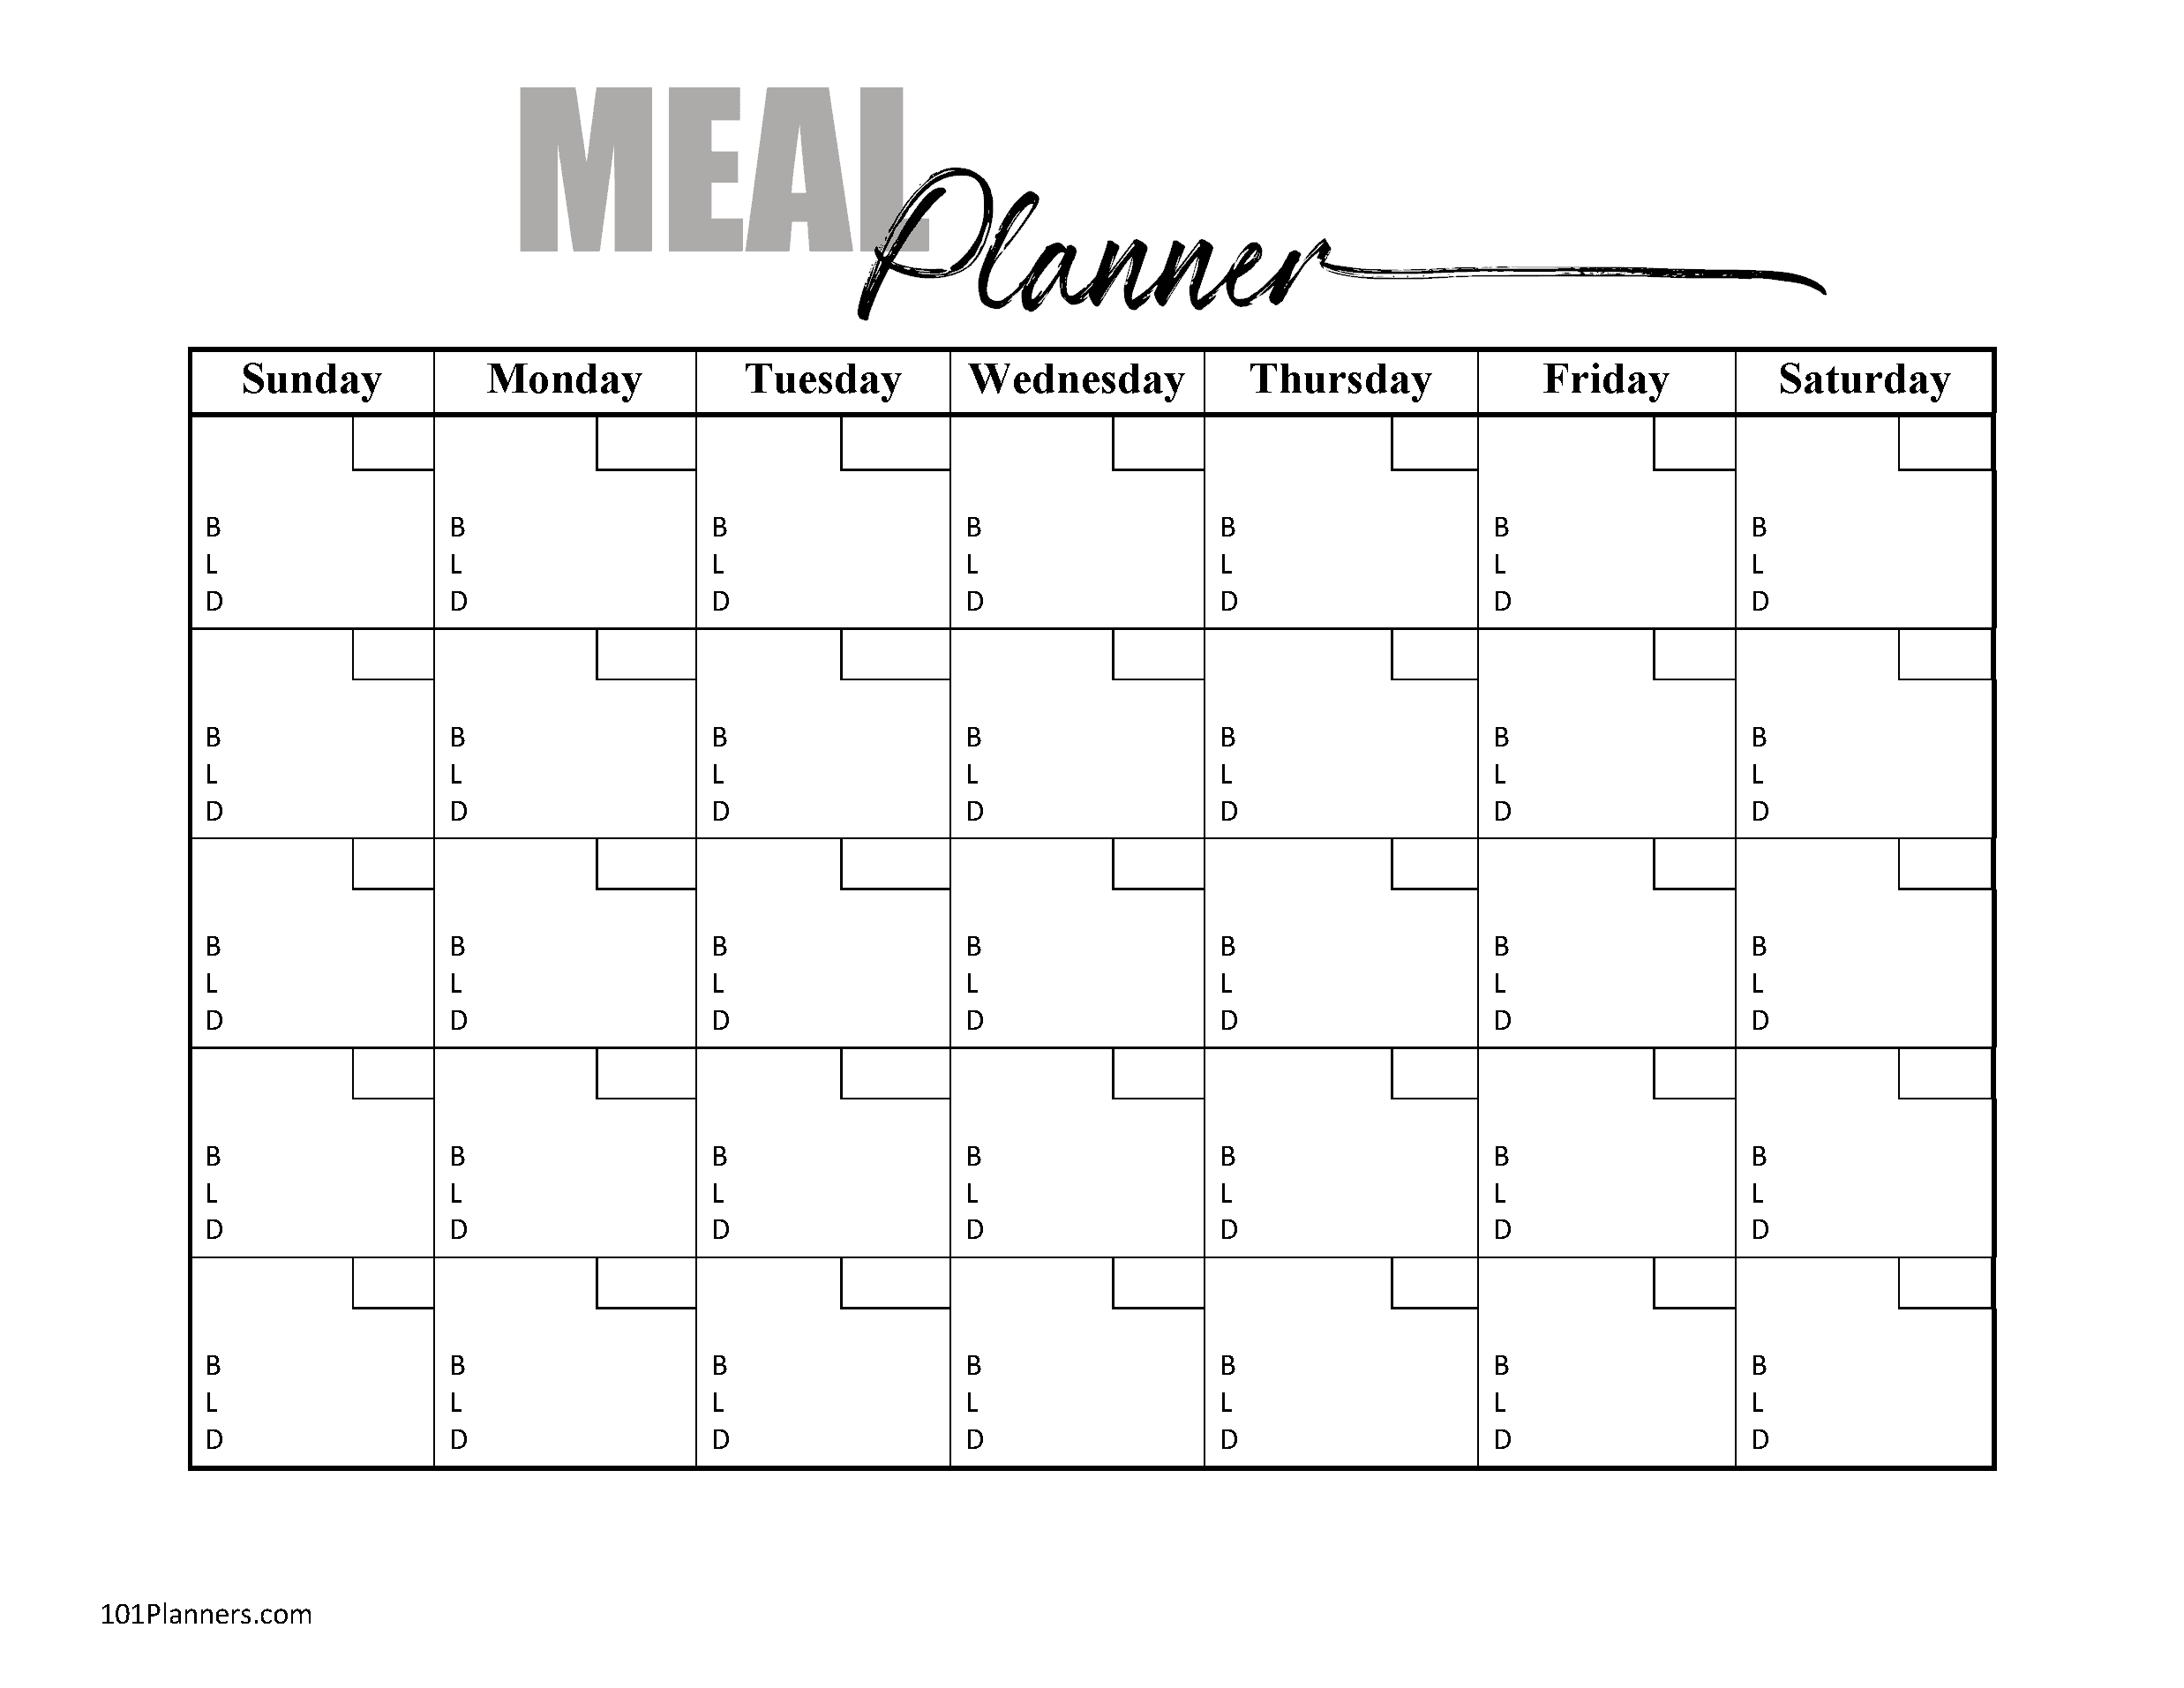 Word Meal Planner Template from www.101planners.com